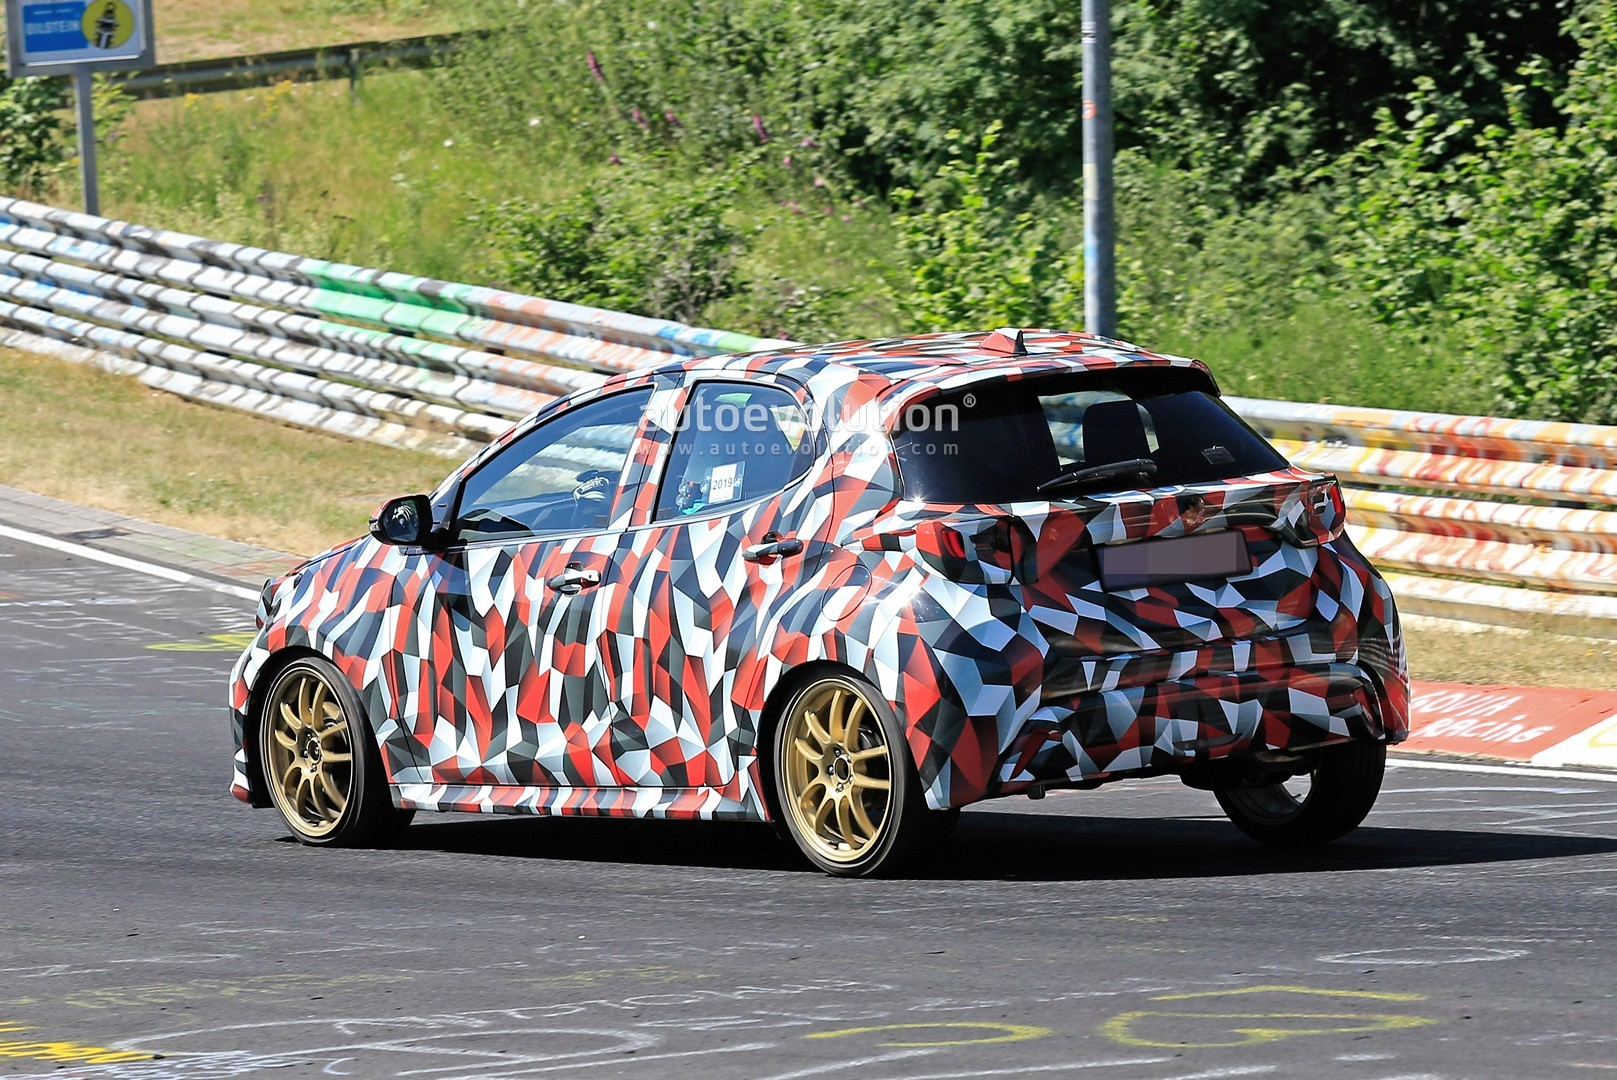 all-new-to​yota-yaris​-spied-at-​the-nurbur​gring-in-h​ybrid-and-​sport-form​s_26